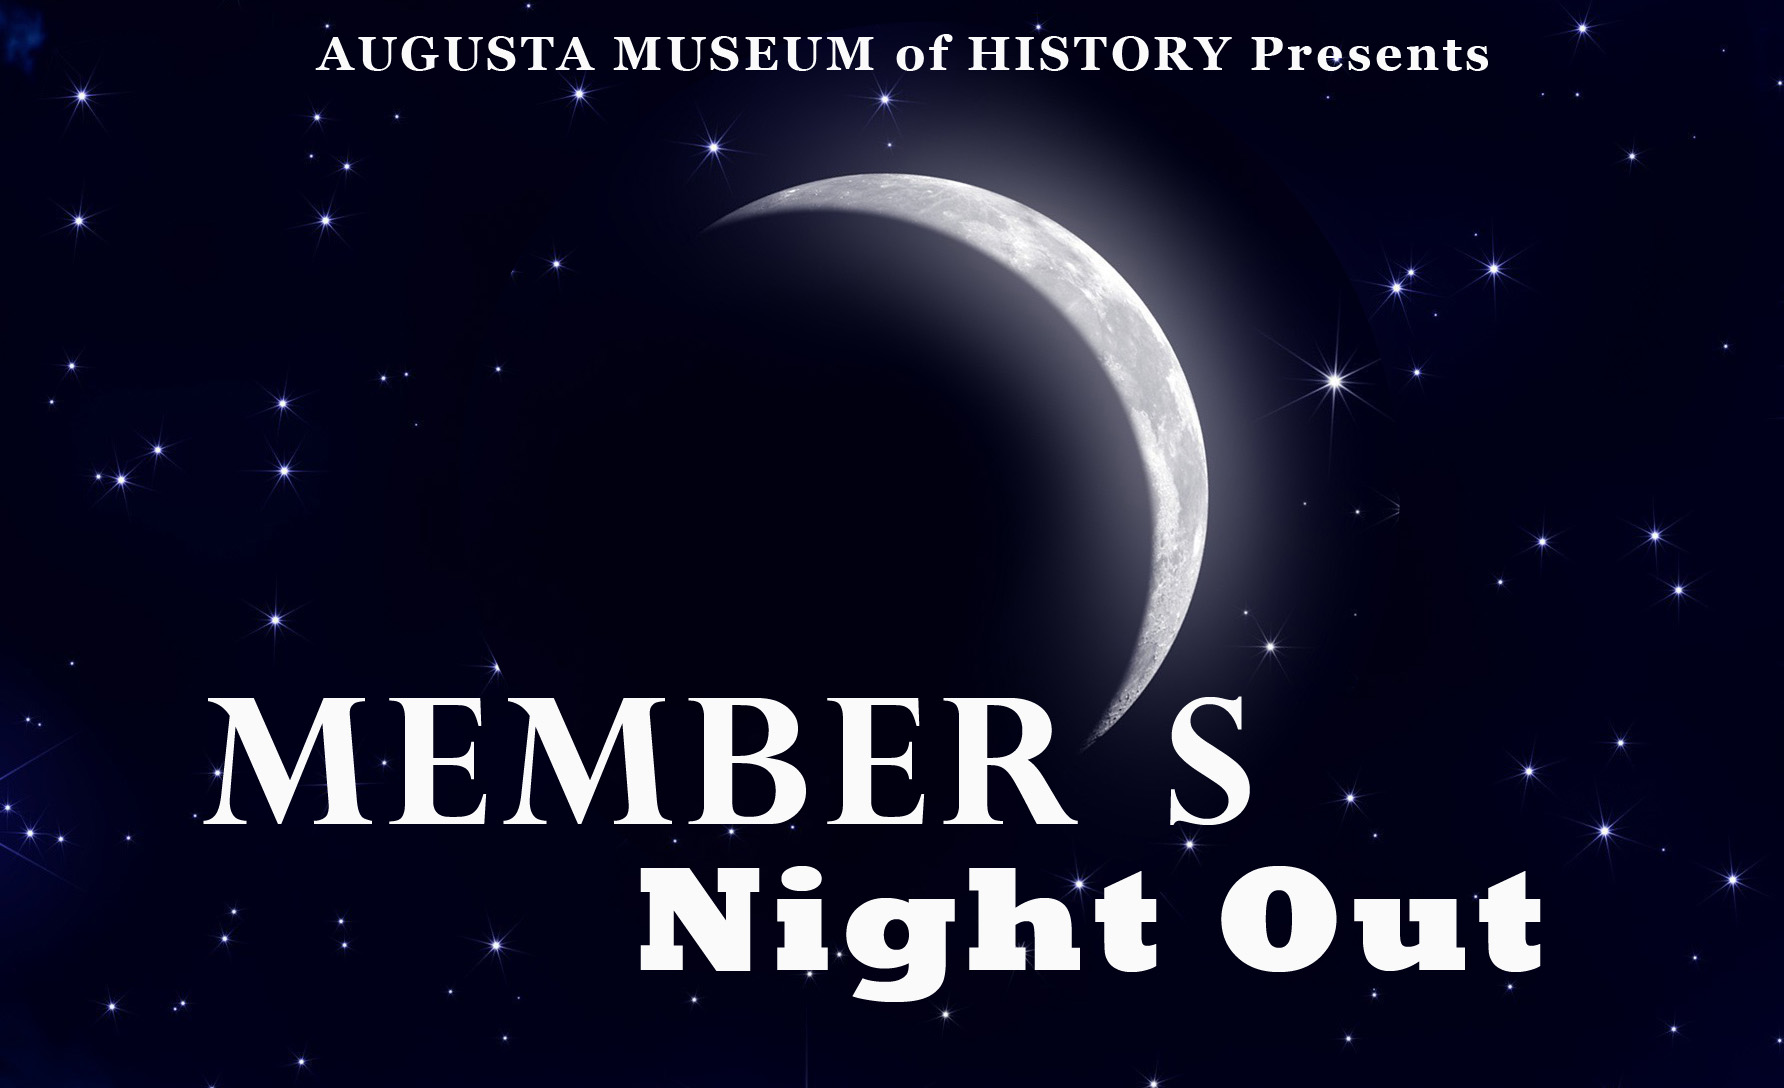 Member's Night Out | Augusta Museum of History